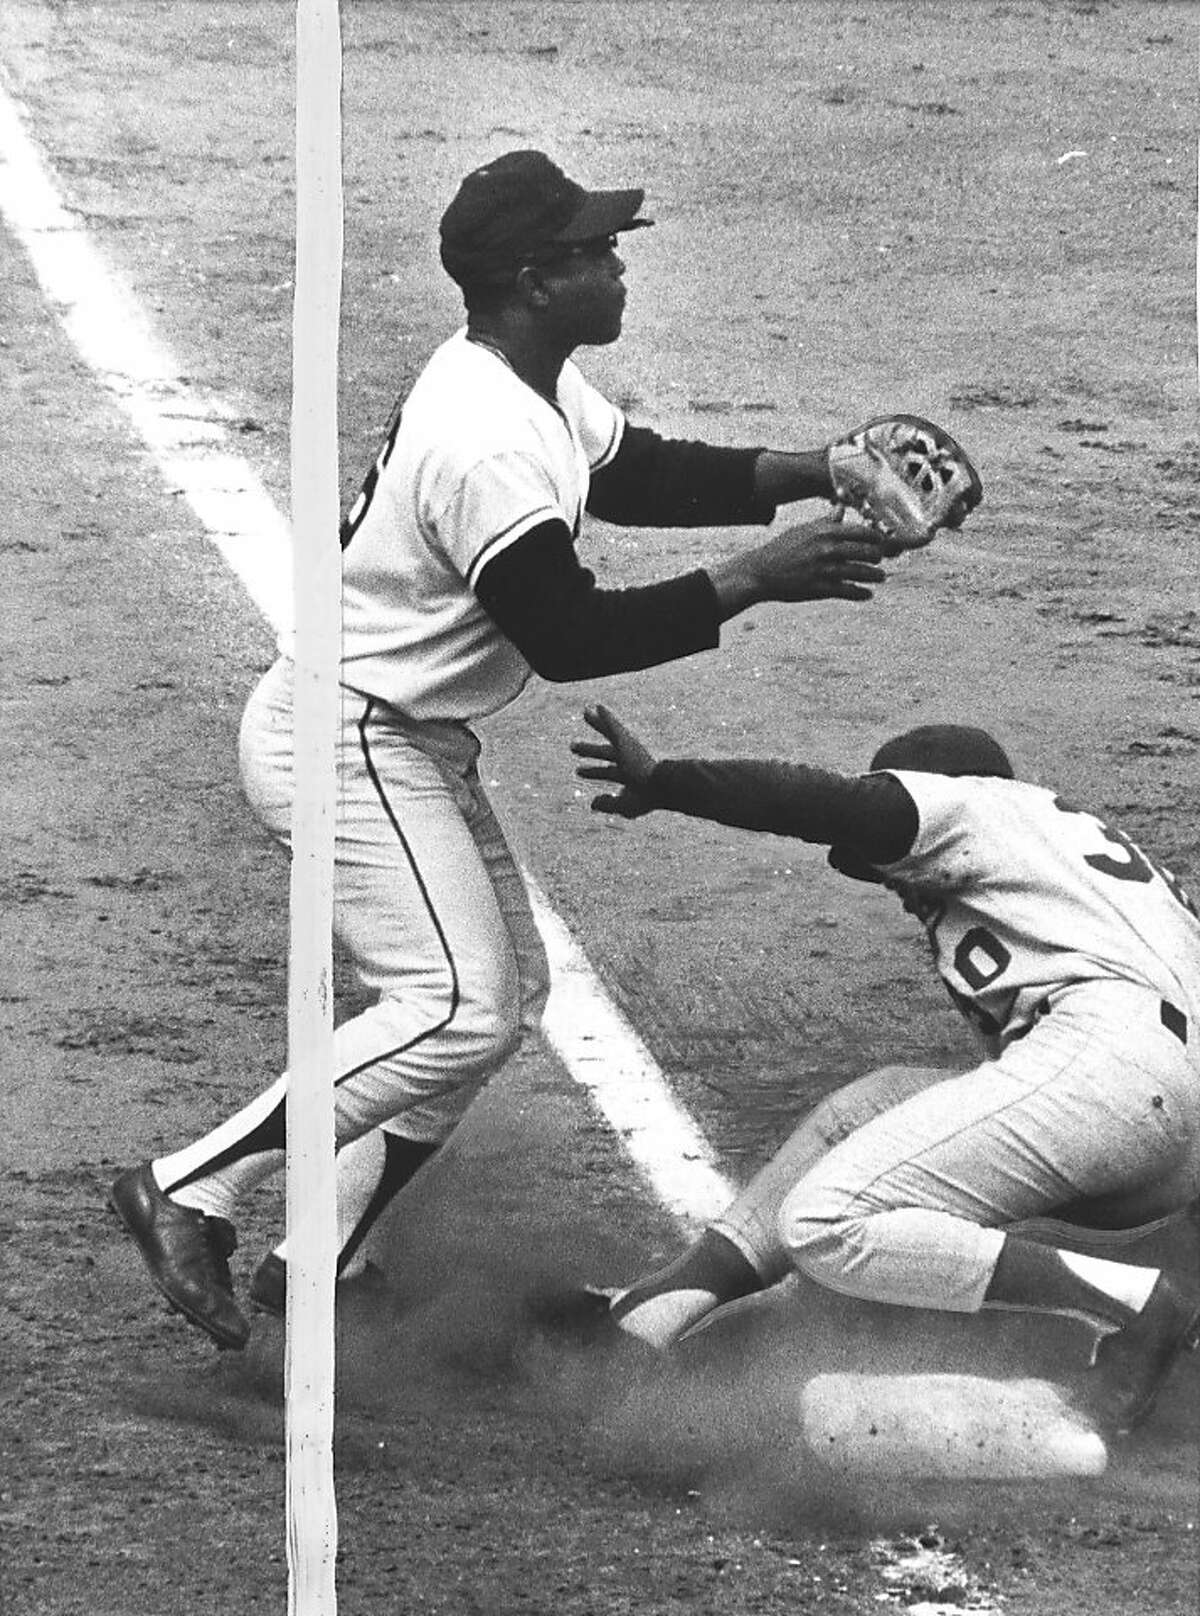 9-21-65- San Francisco- Three bases on a single. Los Angeles short stop Maury Wills eases into third base after hitting a single in the sixth inning of game today at San Francisco that got by Willie Mays, who tried to scoop it up in center field on the run. Third baseman Jim Hart wits patiently for the ball at third. It was the third error of the season for Mays. Willie scored on a single by Willie Davis before the inning ended.